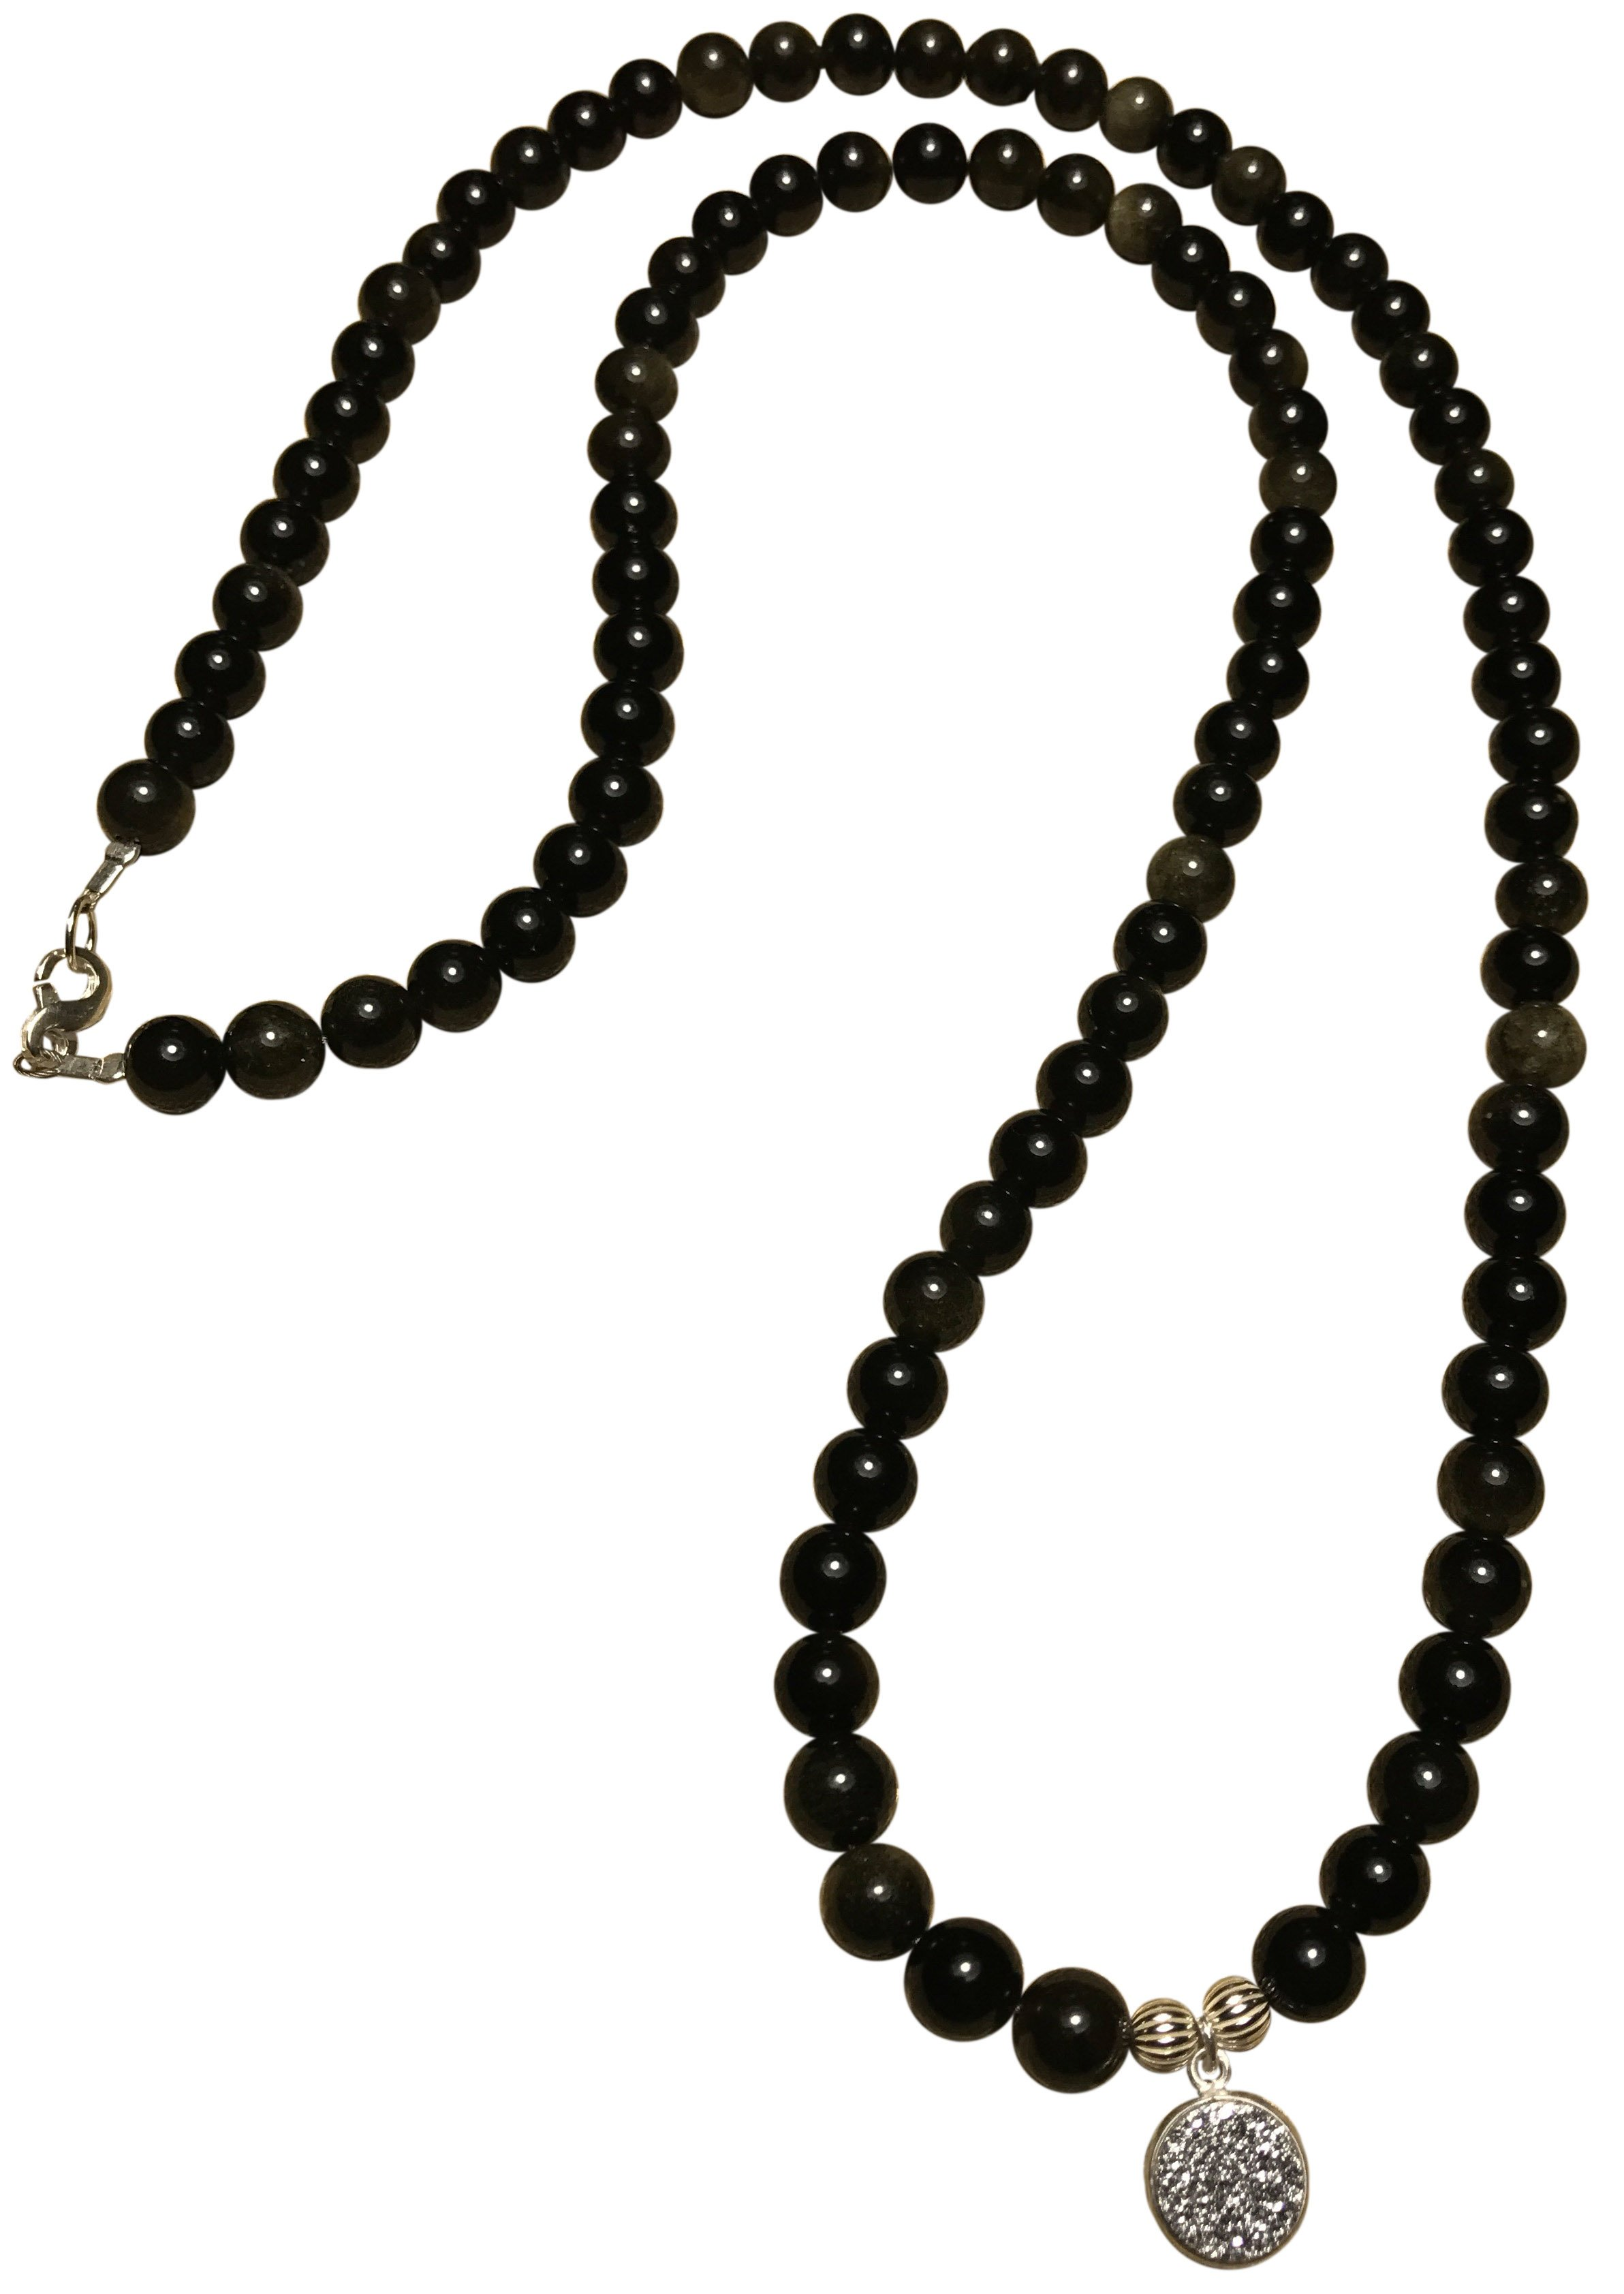 Amazing necklaces to attract this season 37